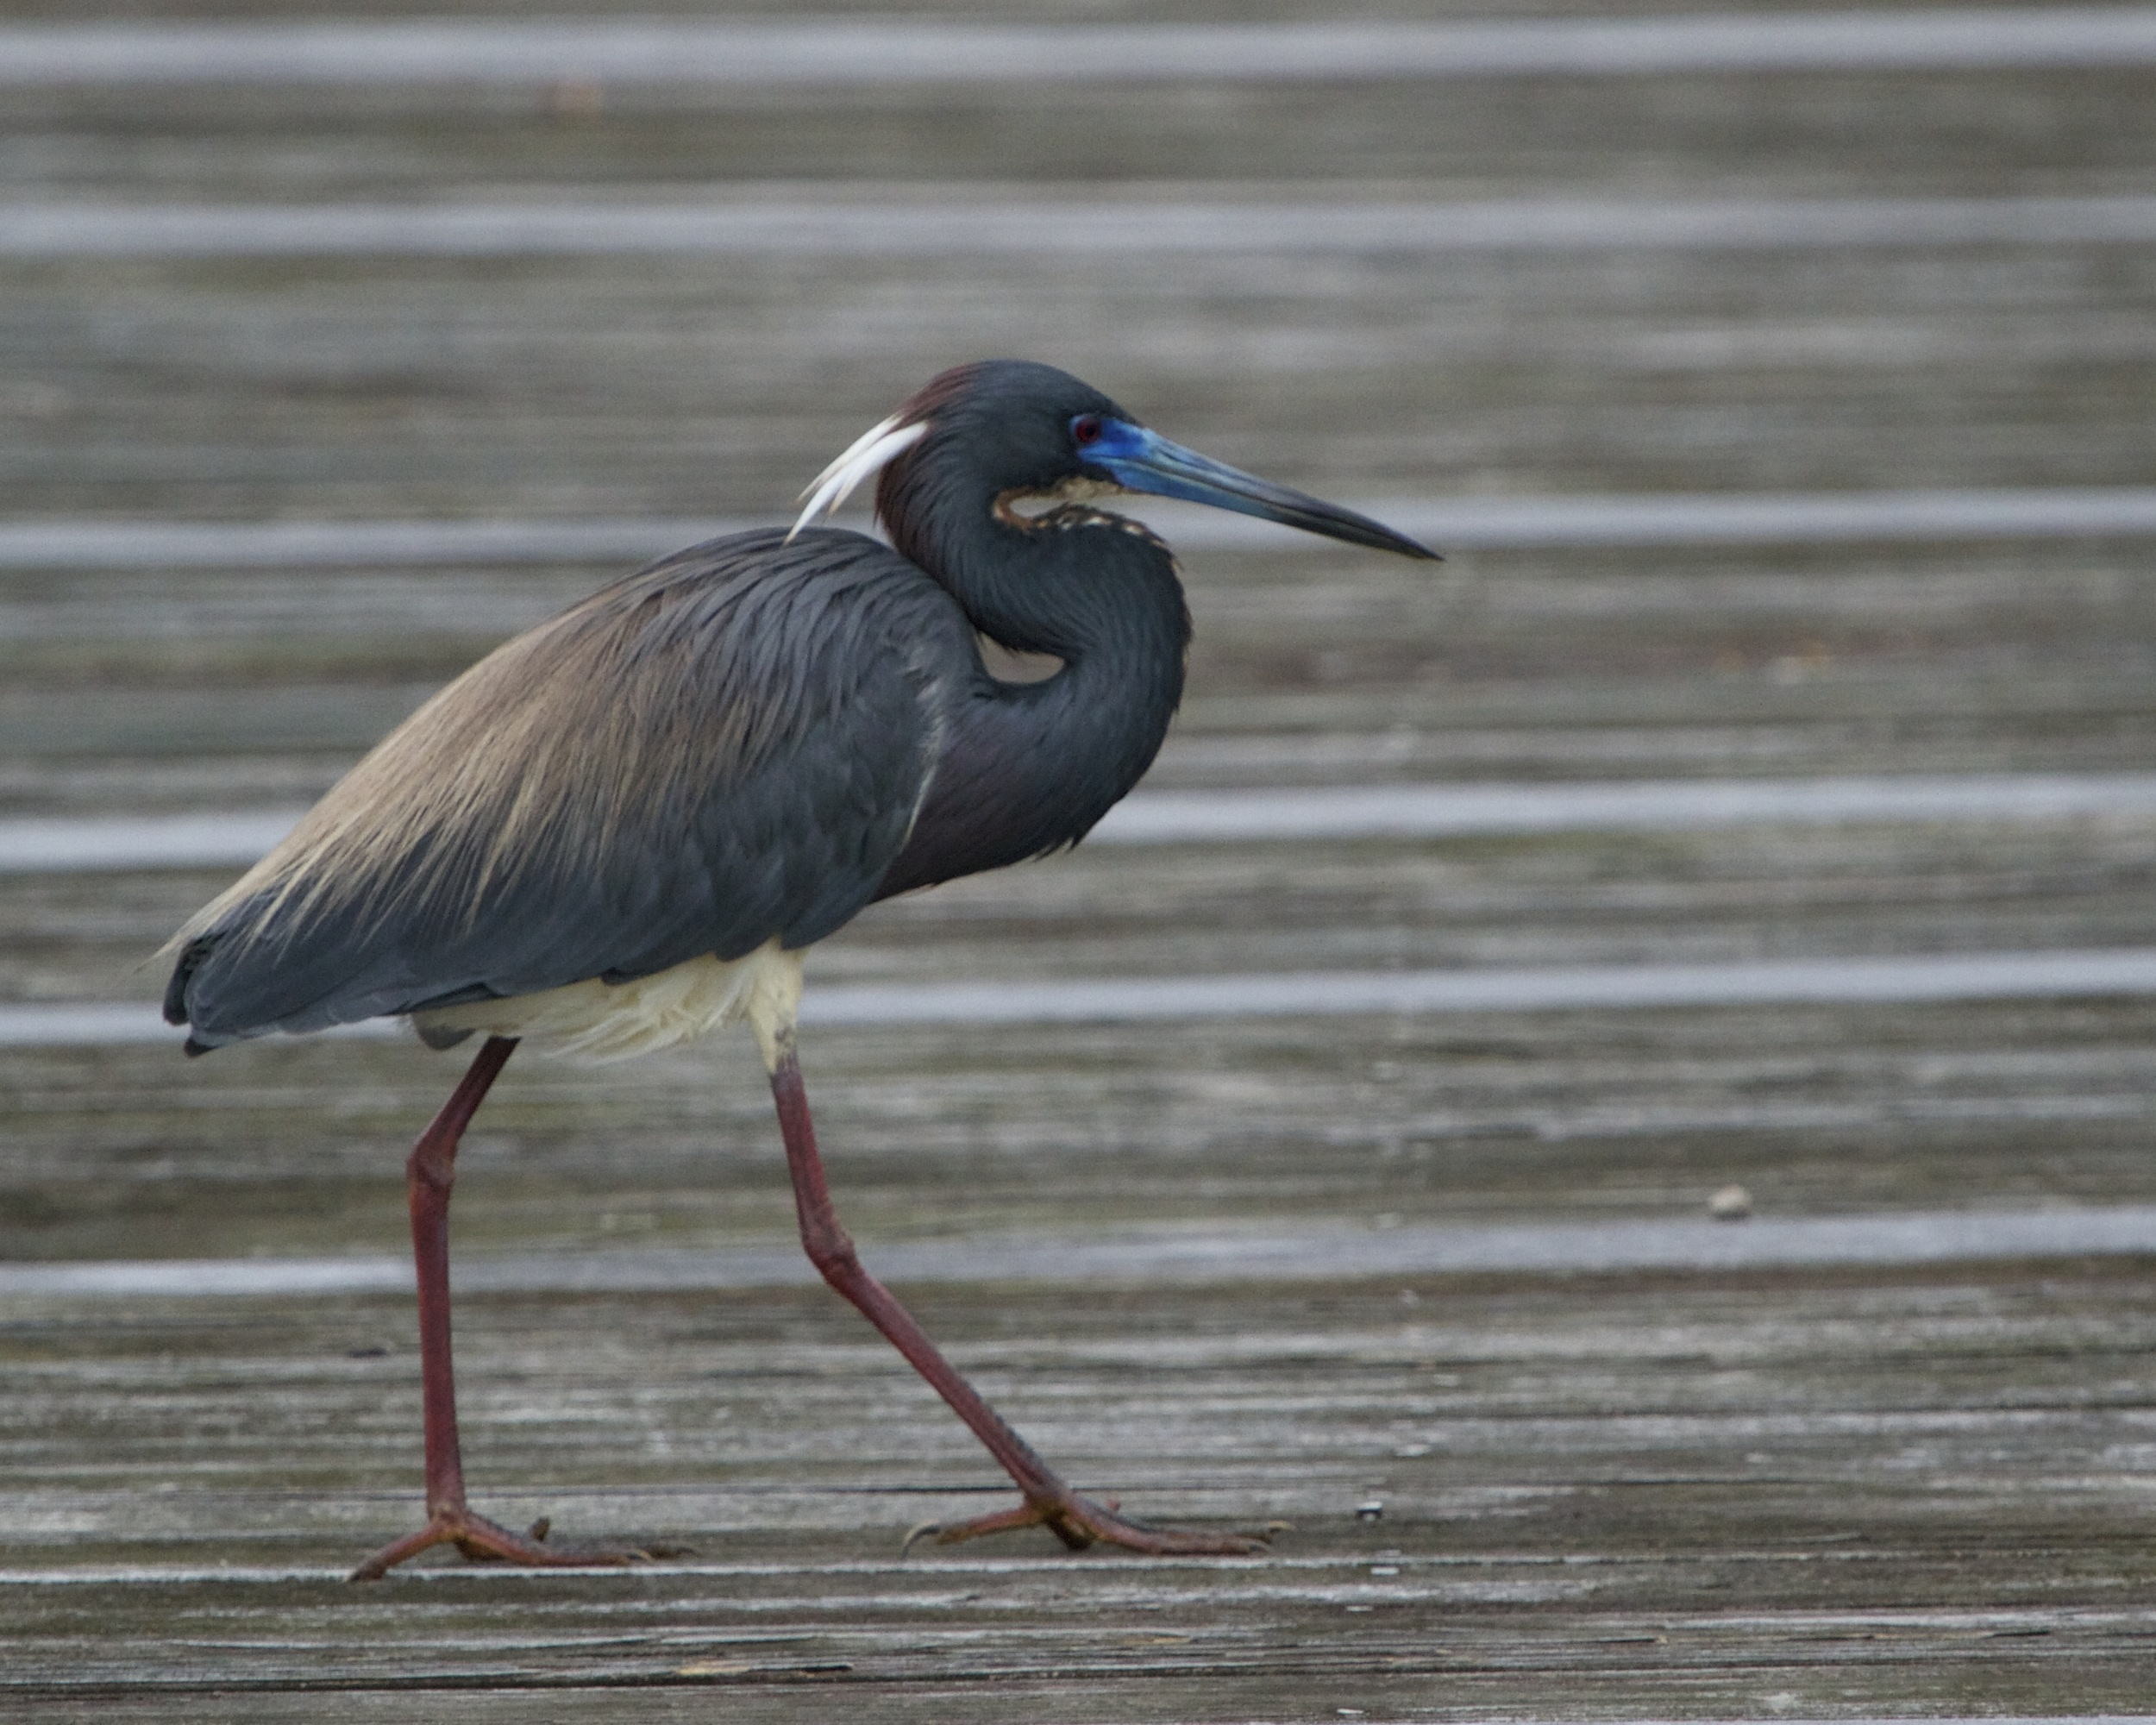 The Tri Colored Heron in Breeding plumes puts its best foot forward.